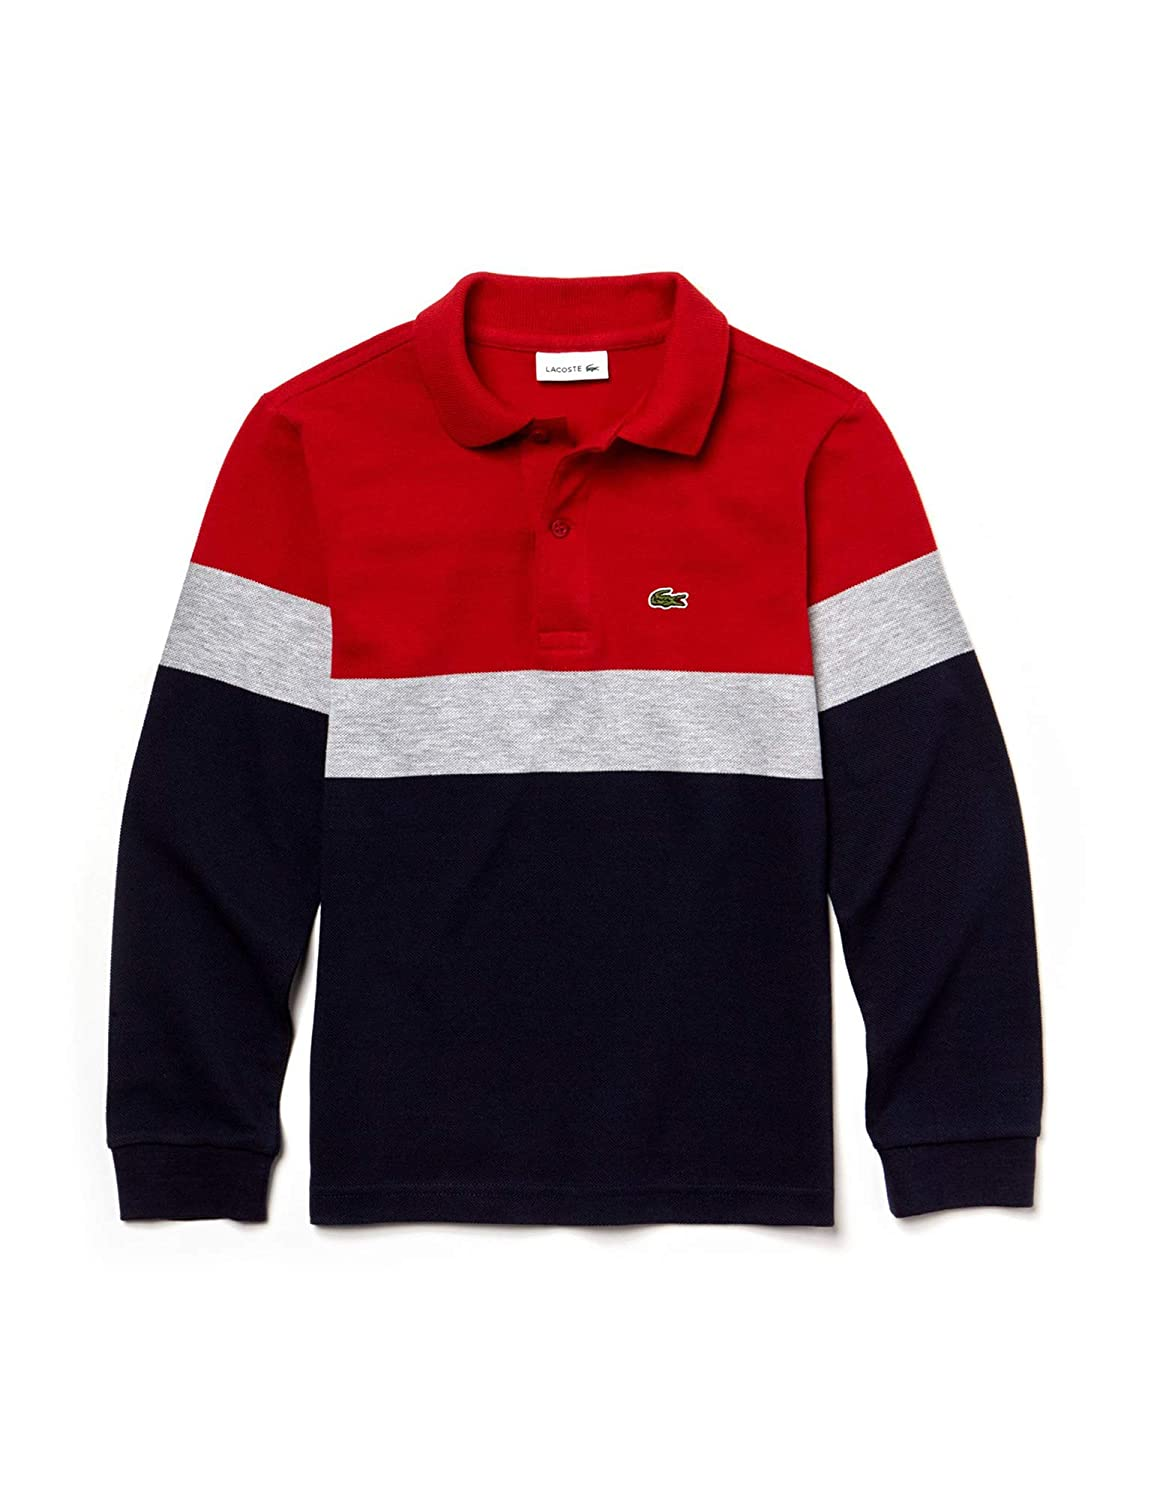 f2ca305e Lacoste Boys Colorblock Kids' Polo T-Shirt Navy in Size 4 Years (104 cm):  Amazon.co.uk: Clothing